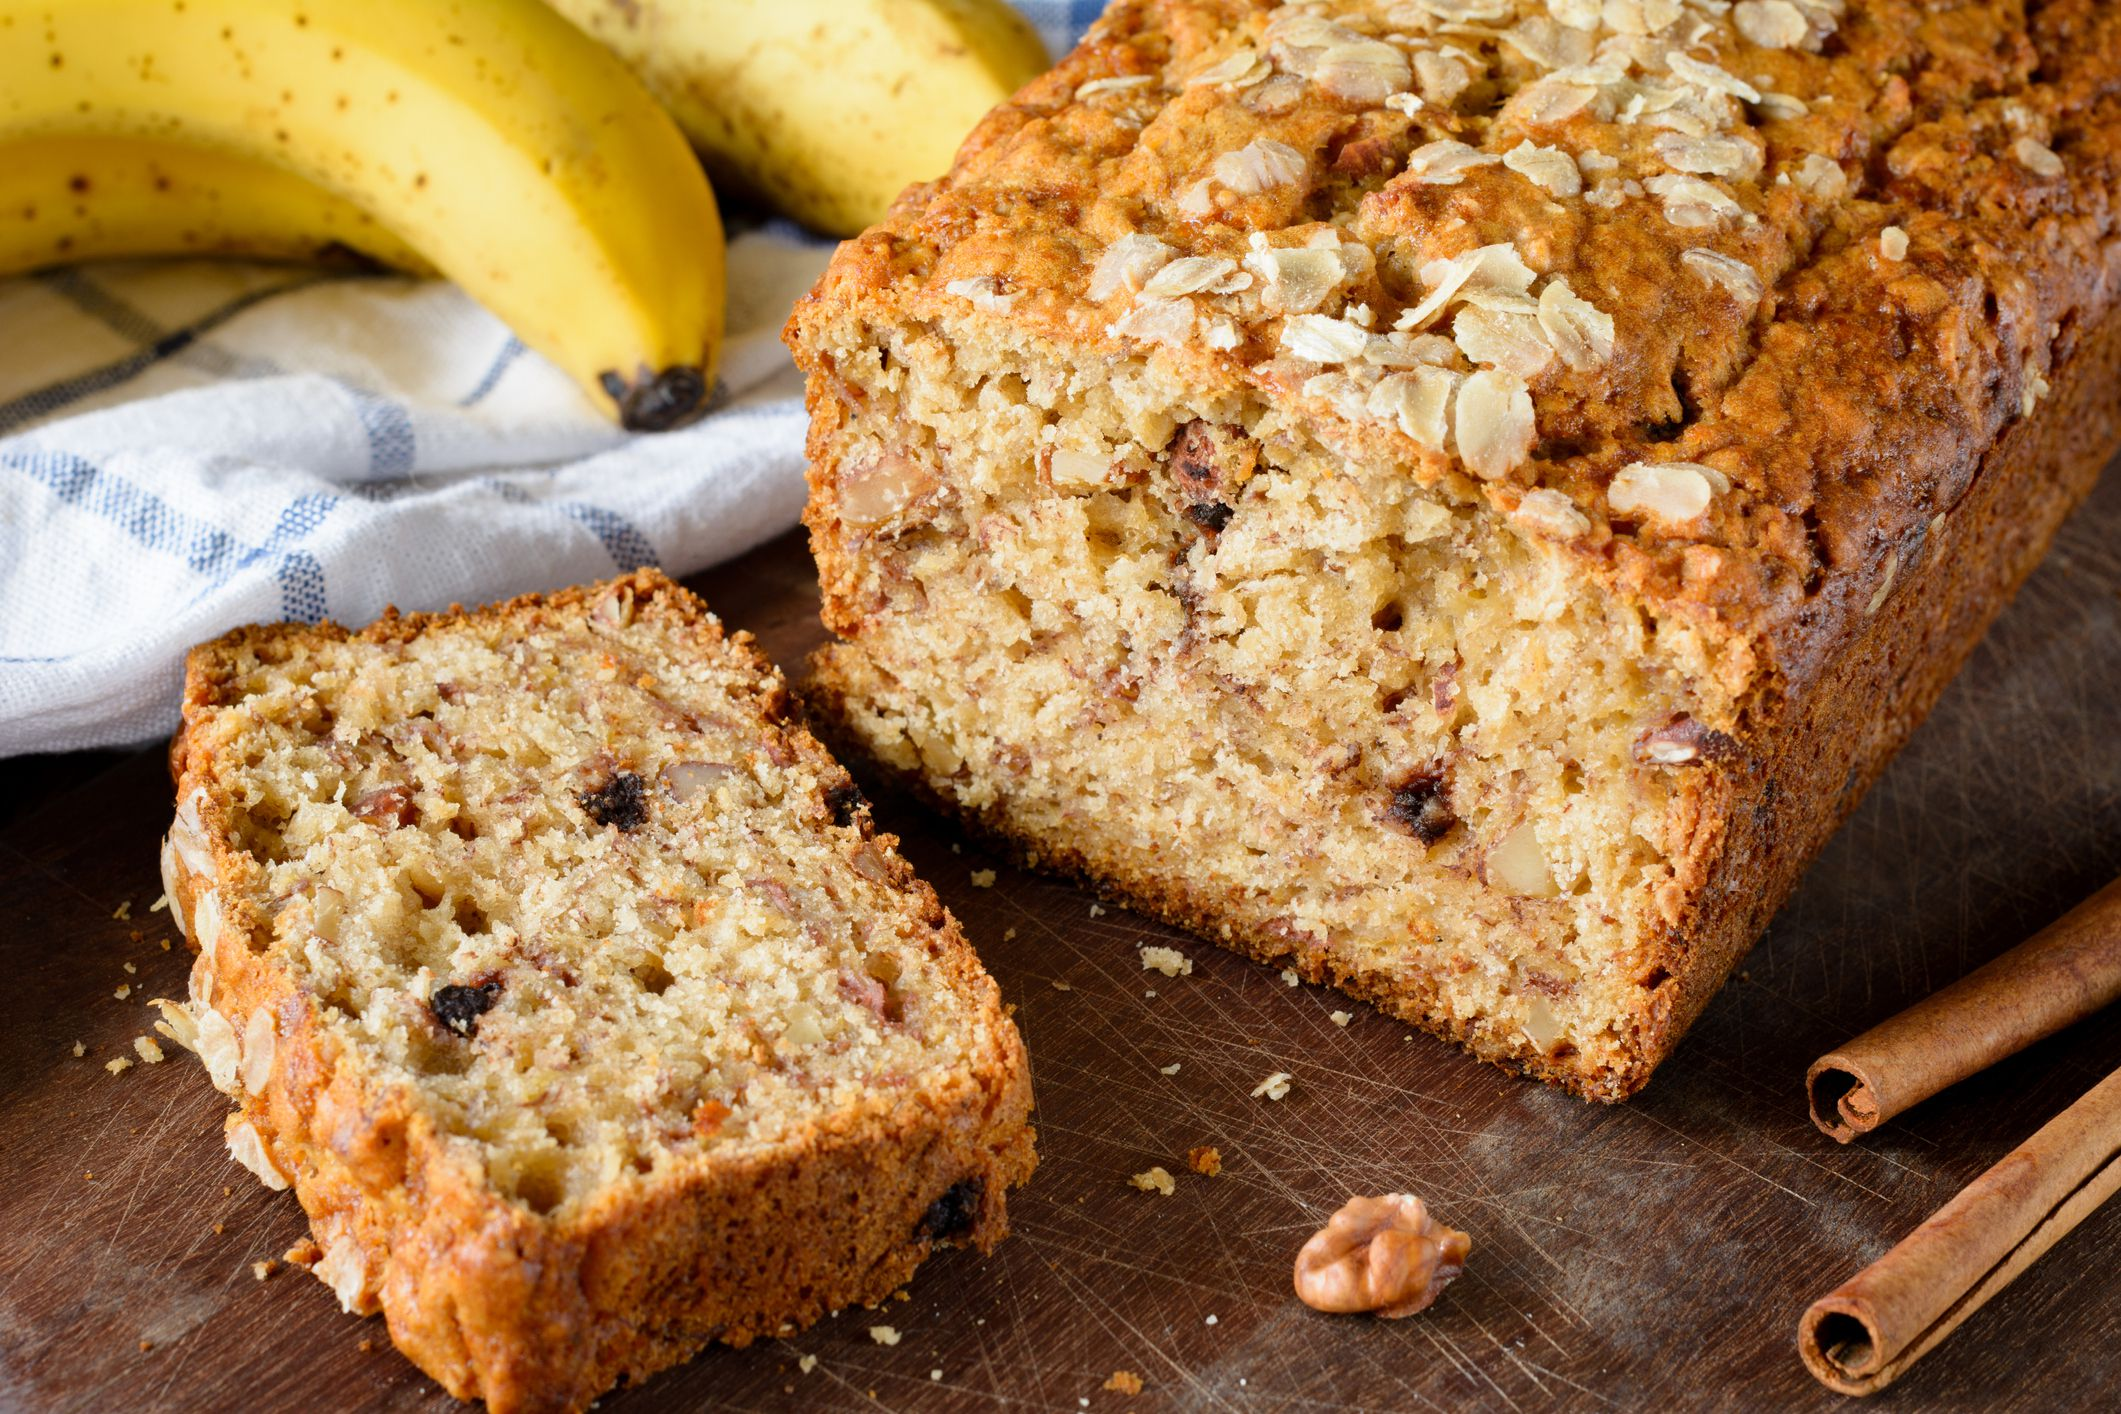 The Best Banana Bread Recipe in the World is Moist and Full of Flavor